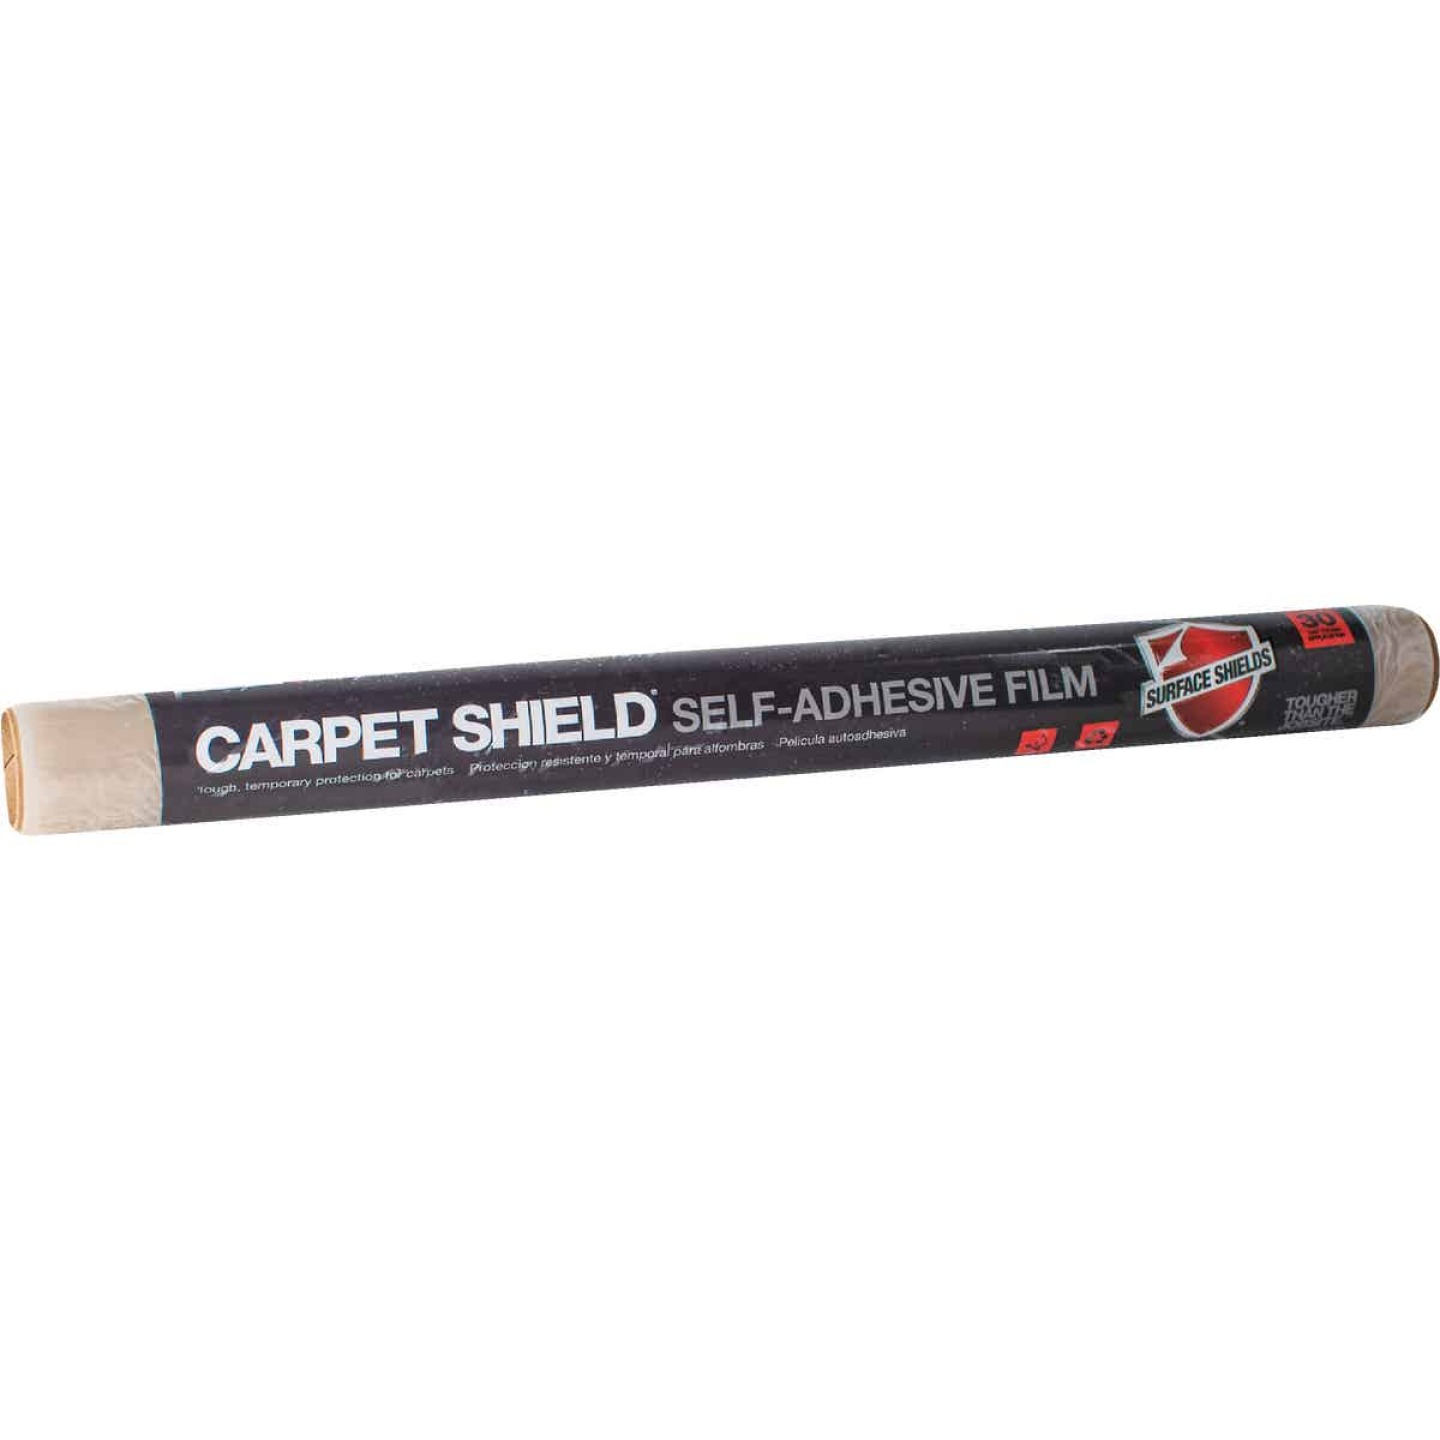 Surface Shields Carpet Shield 24 In. x 50 Ft. Self-Adhesive Film Floor Protector Image 1